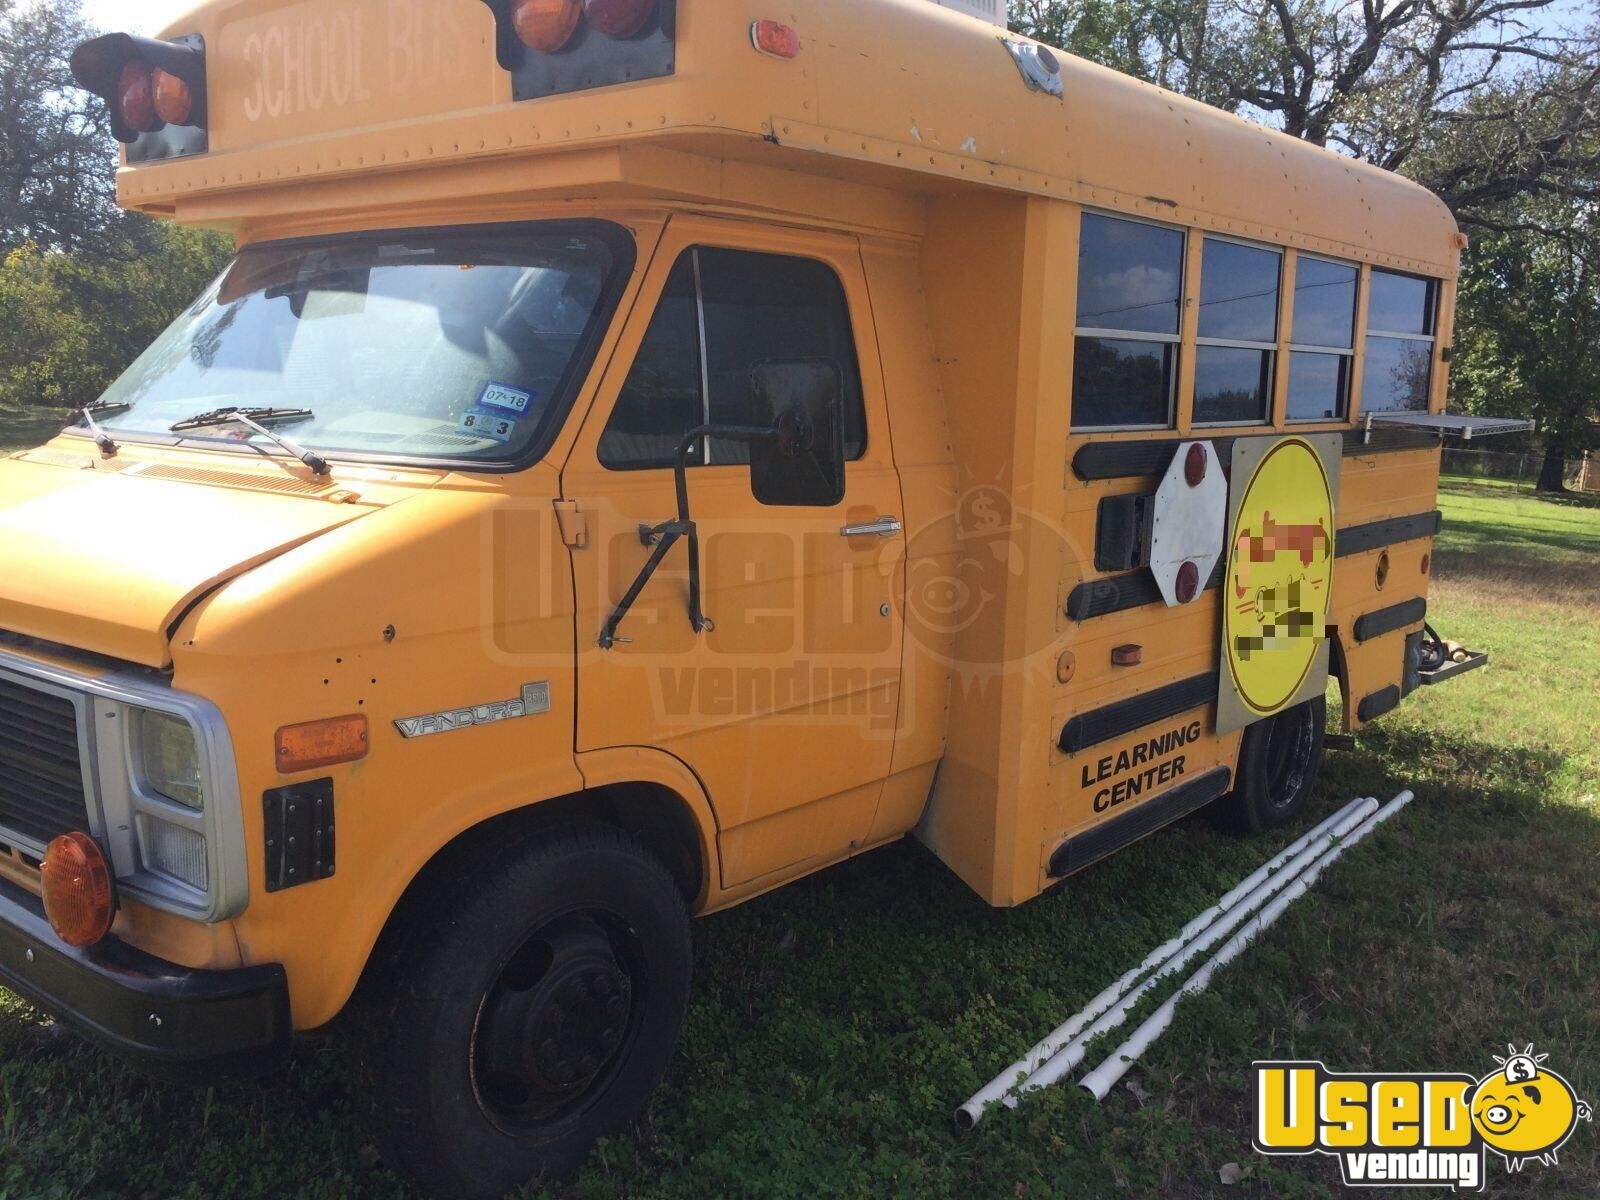 1988 Chevy Duramax All-purpose Food Truck Concession Window Texas Gas Engine for Sale - 3